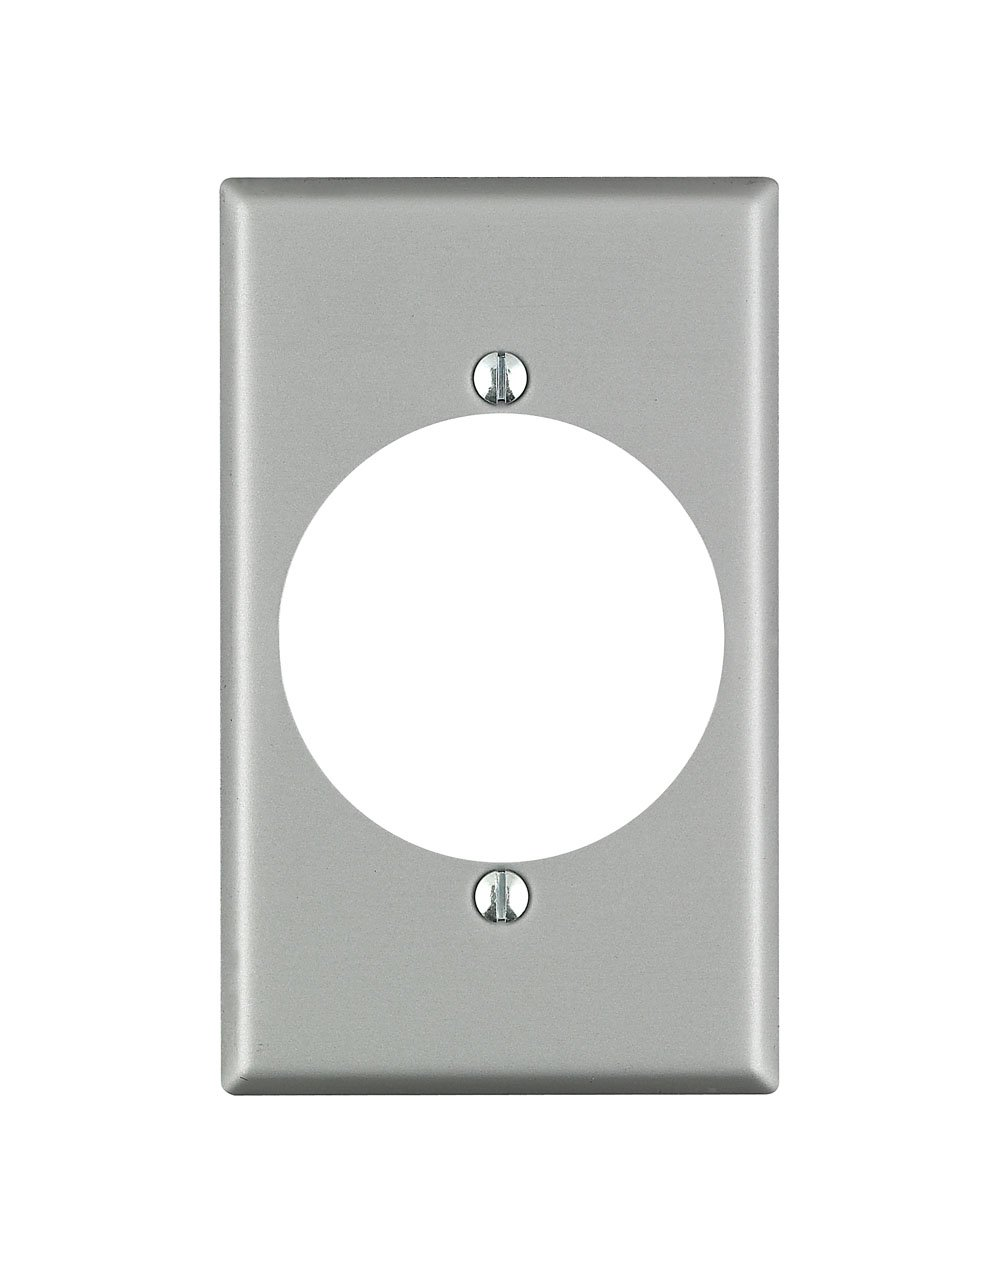 Leviton 4927 001-0-000 Power Receptacle Standard Size Wall Plate 1 Gang 4-1//2 in L X 2-3//4 in W 0.187 in T Standard Aluminum